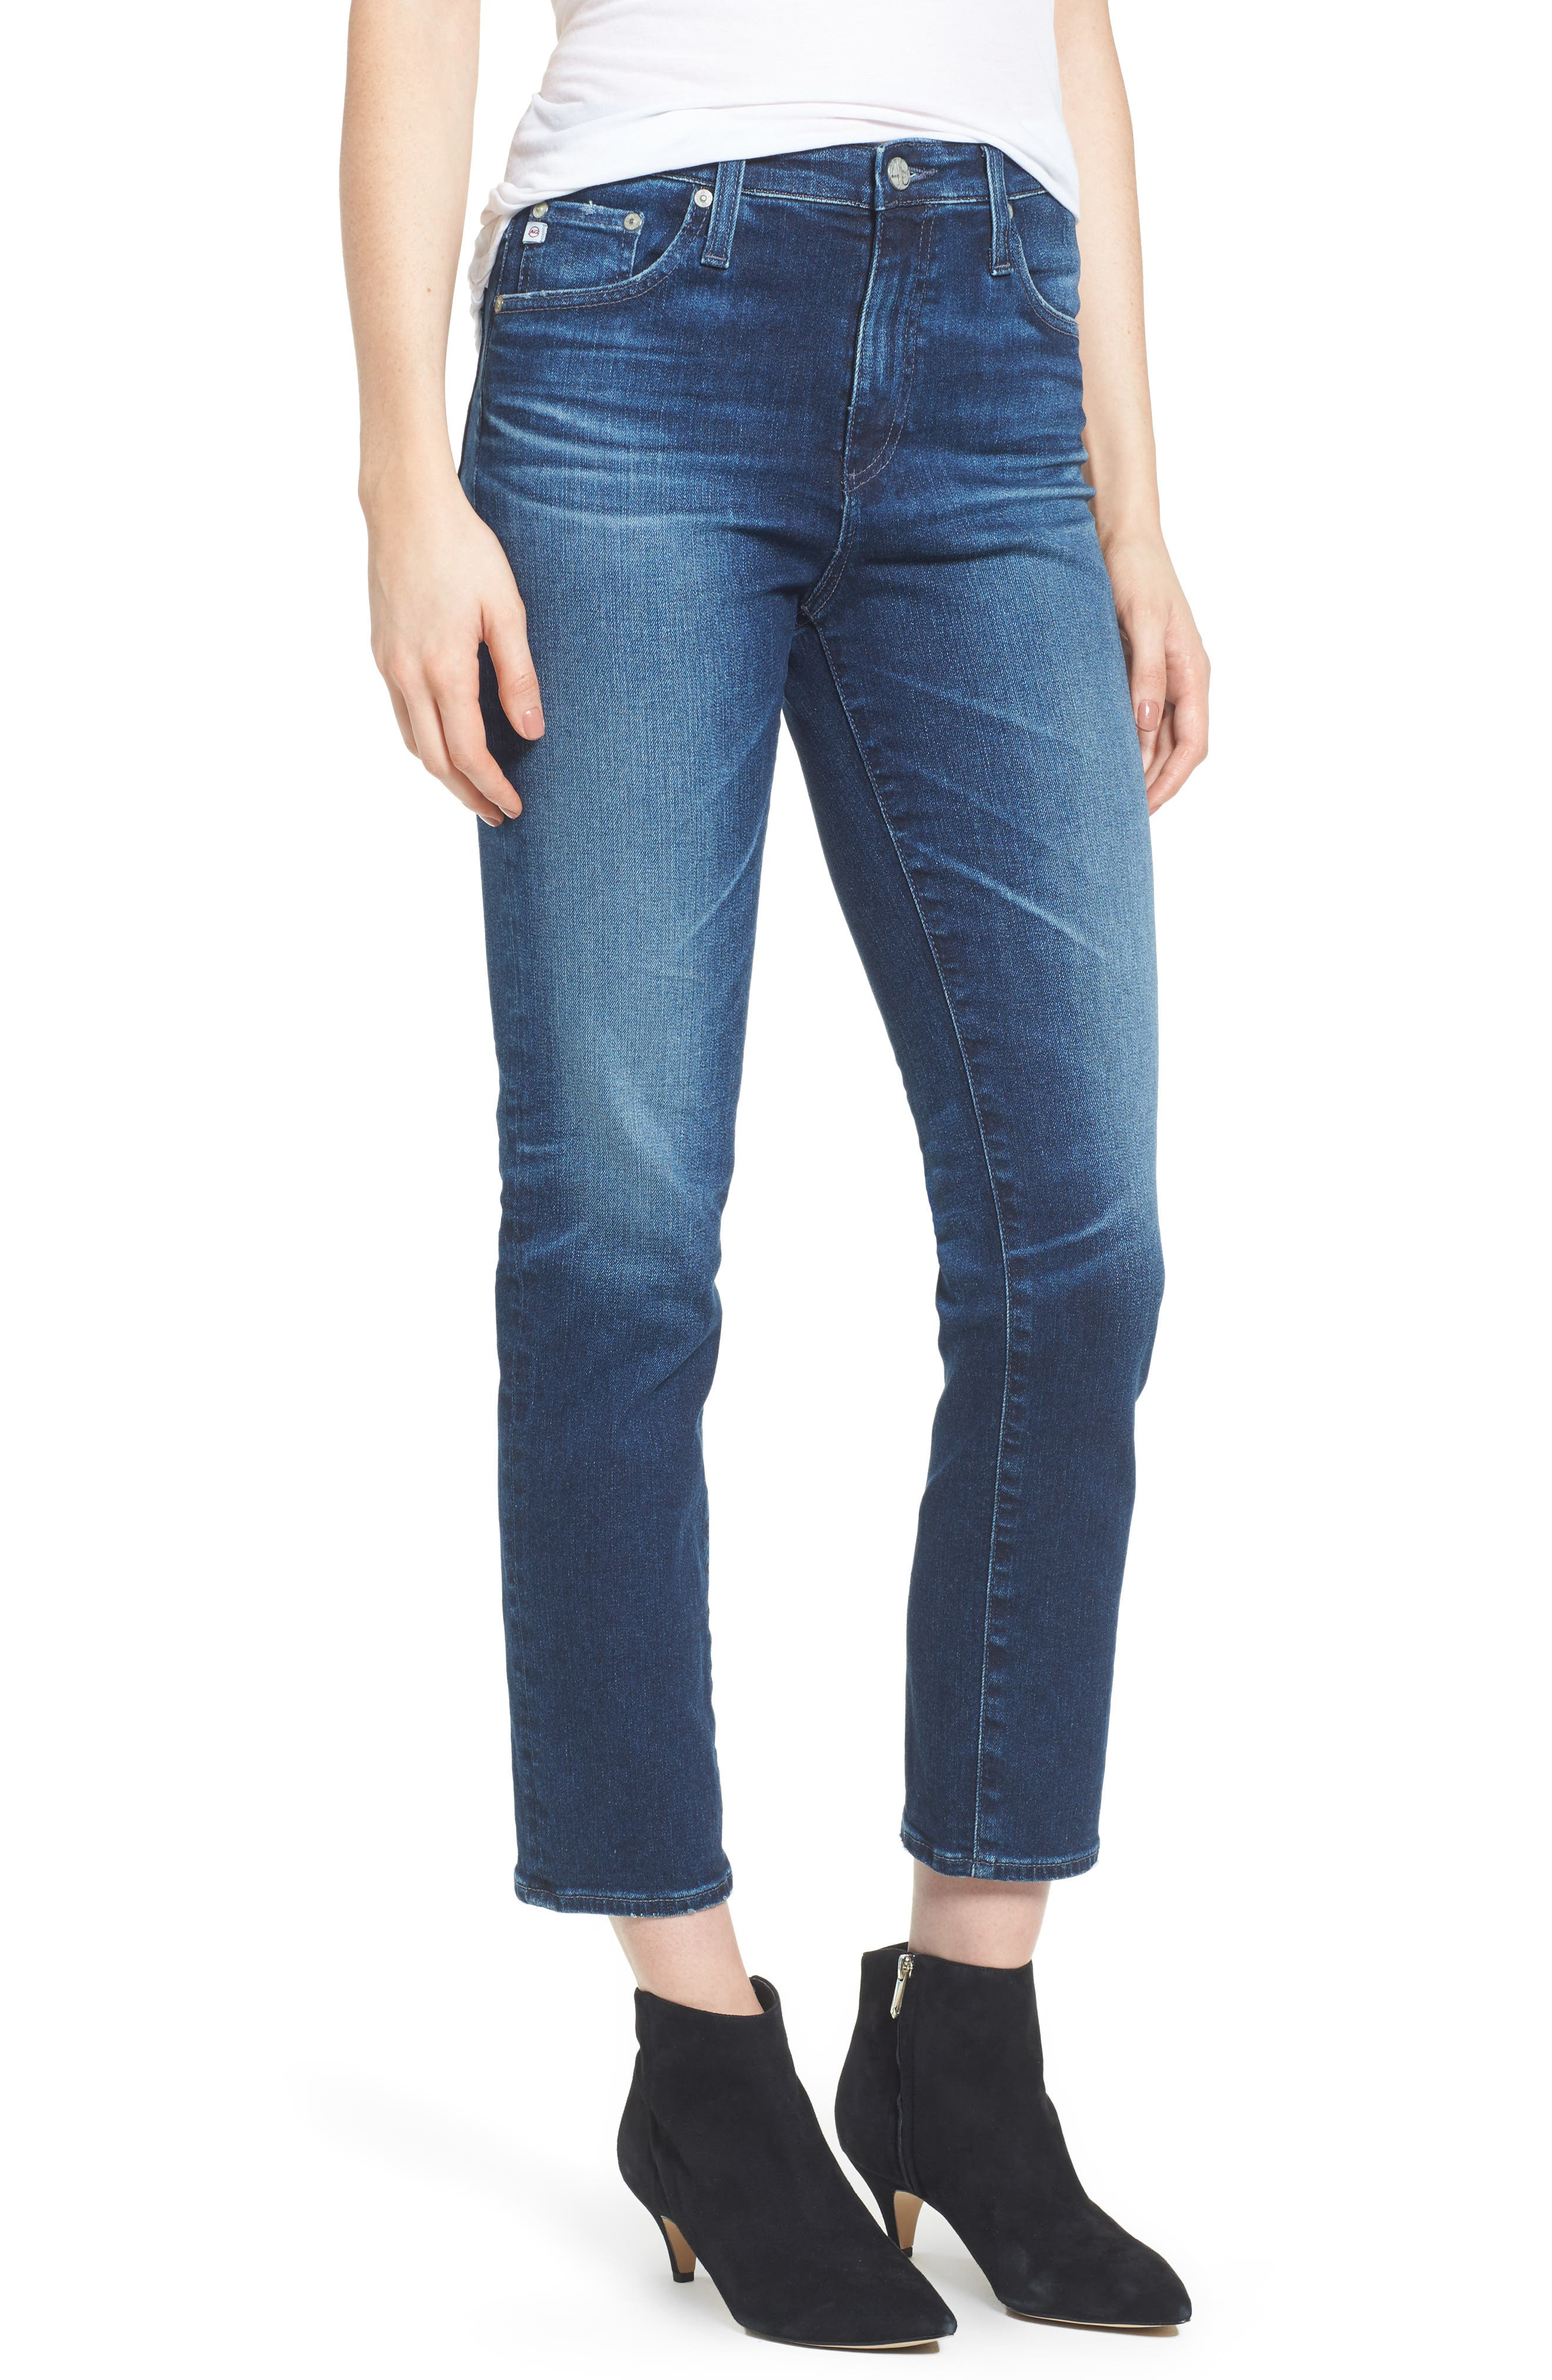 Alternate Image 1 Selected - AG The Isabelle High Waist Crop Straight Leg Jeans (8 Years Ocean Tropic)